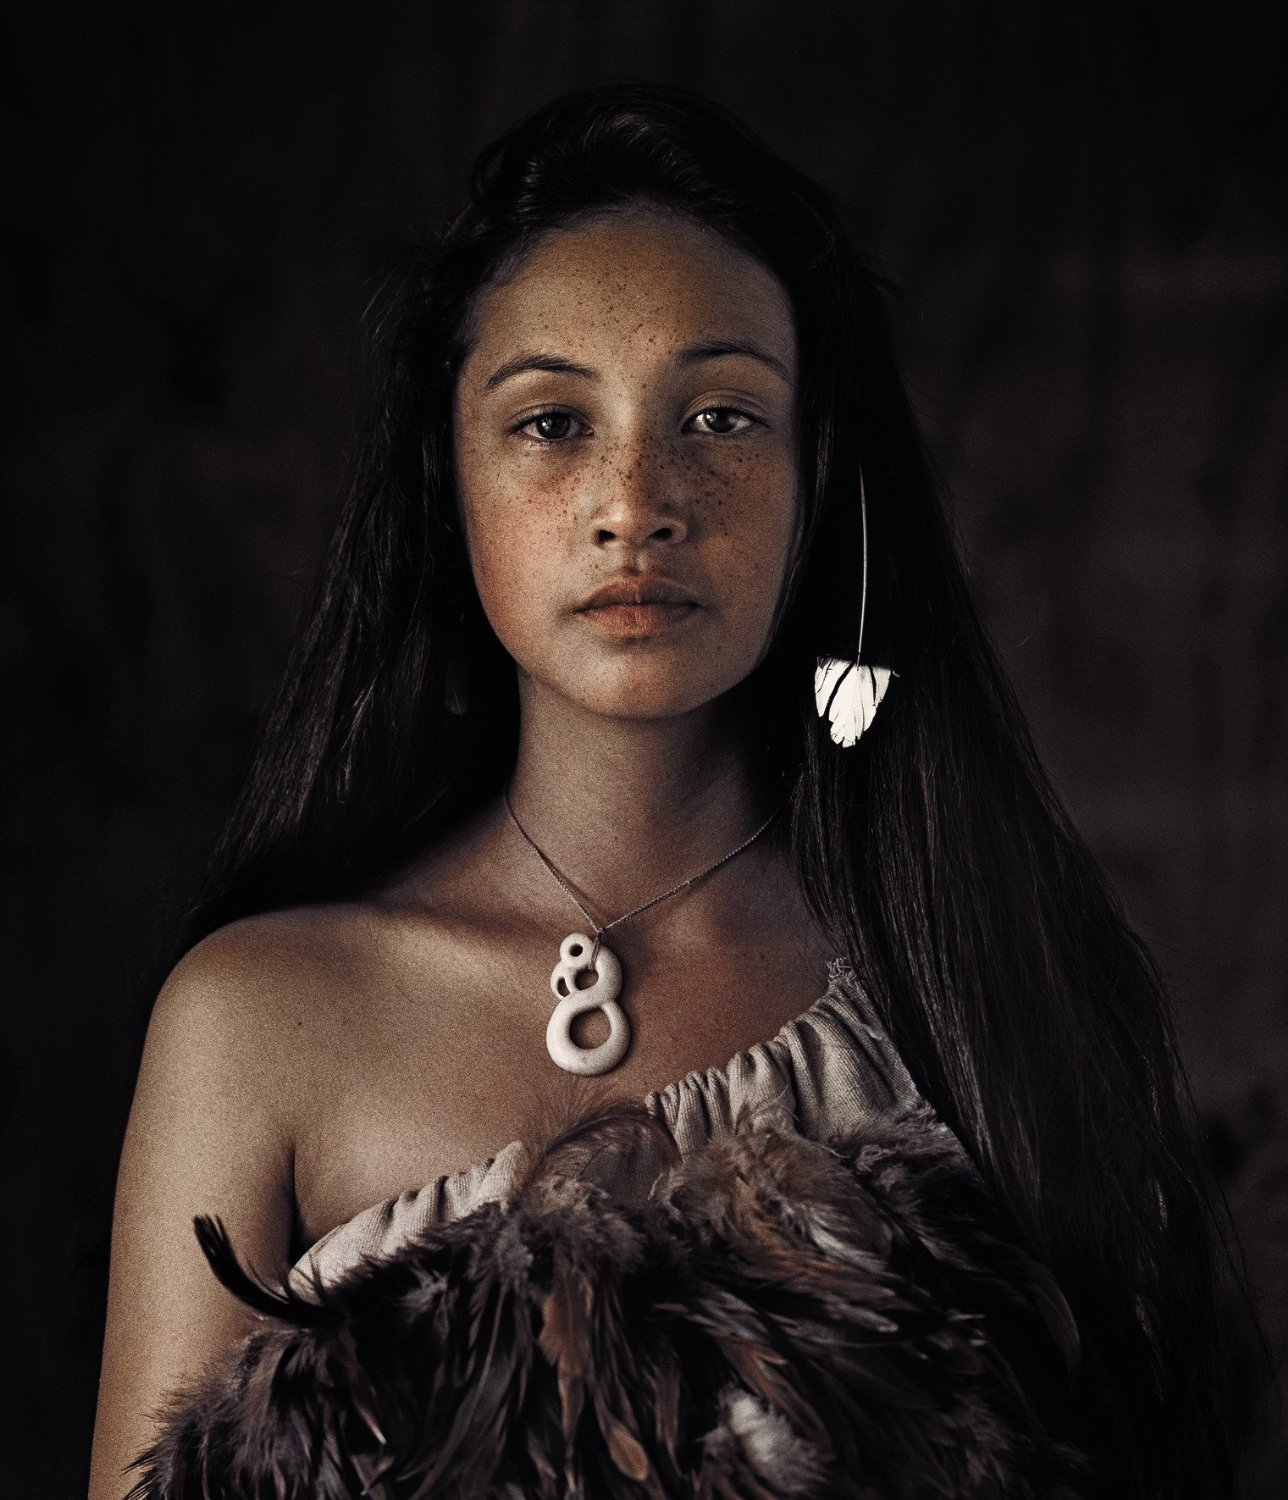 Maori of New ZealandClick image to view more.